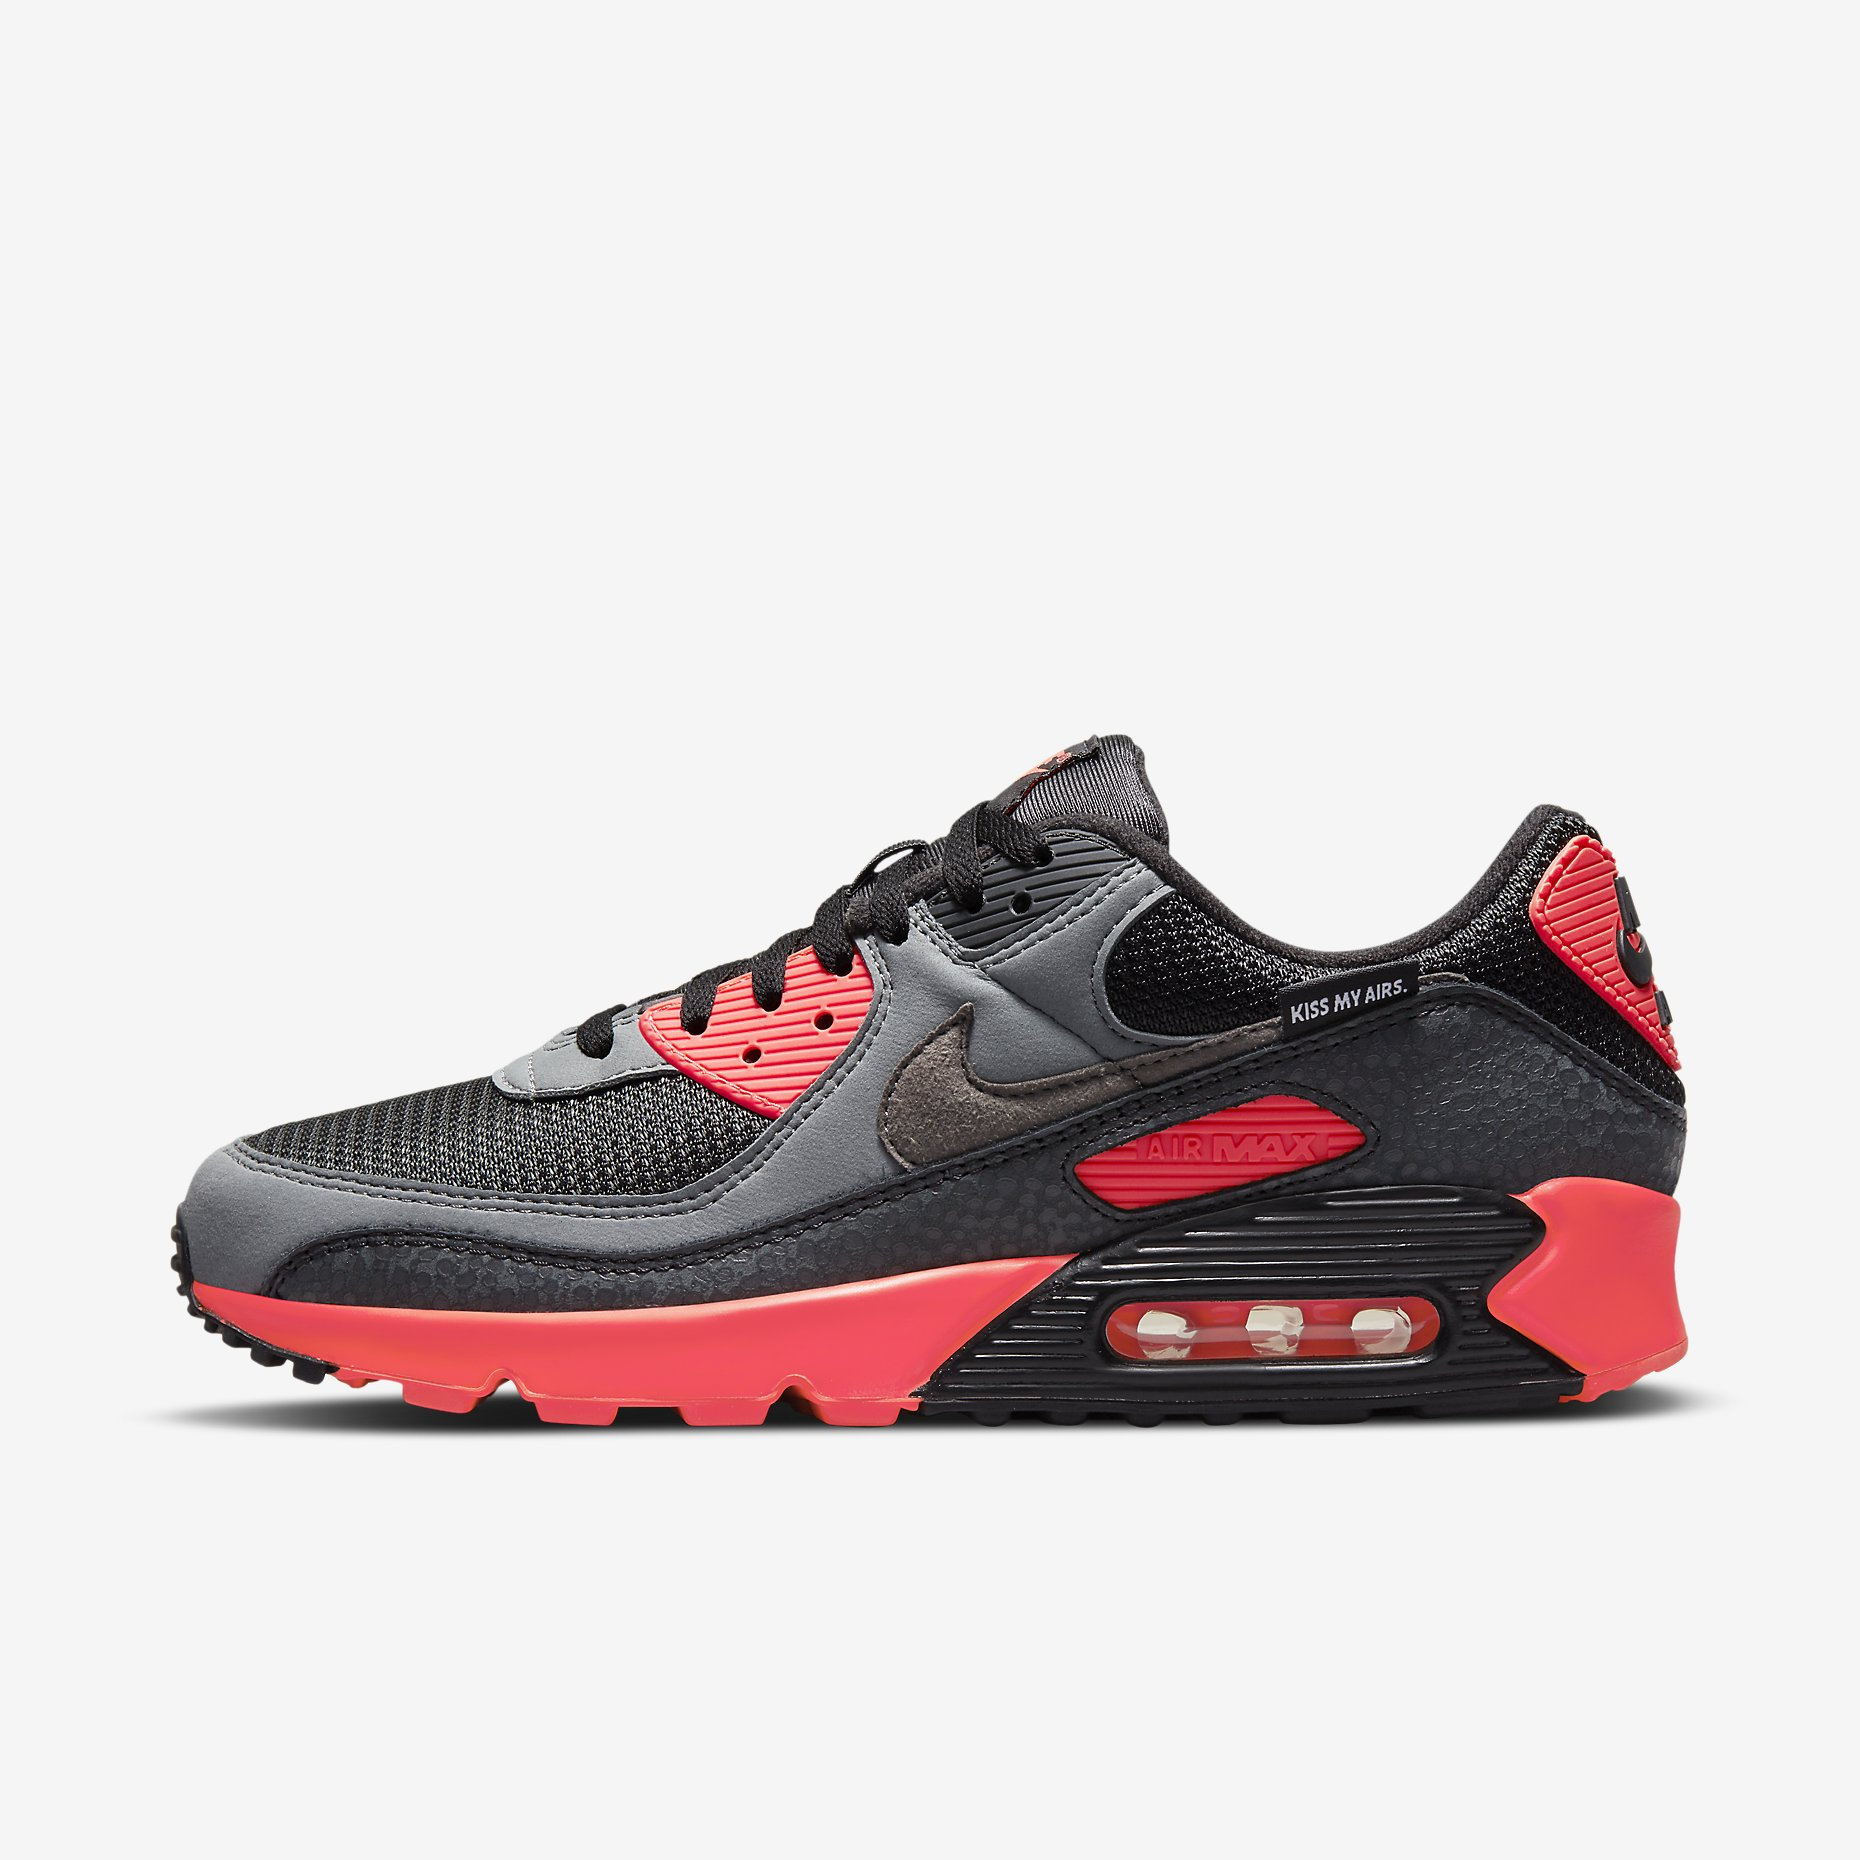 Nike Air Max 90 'Kiss My Airs'}